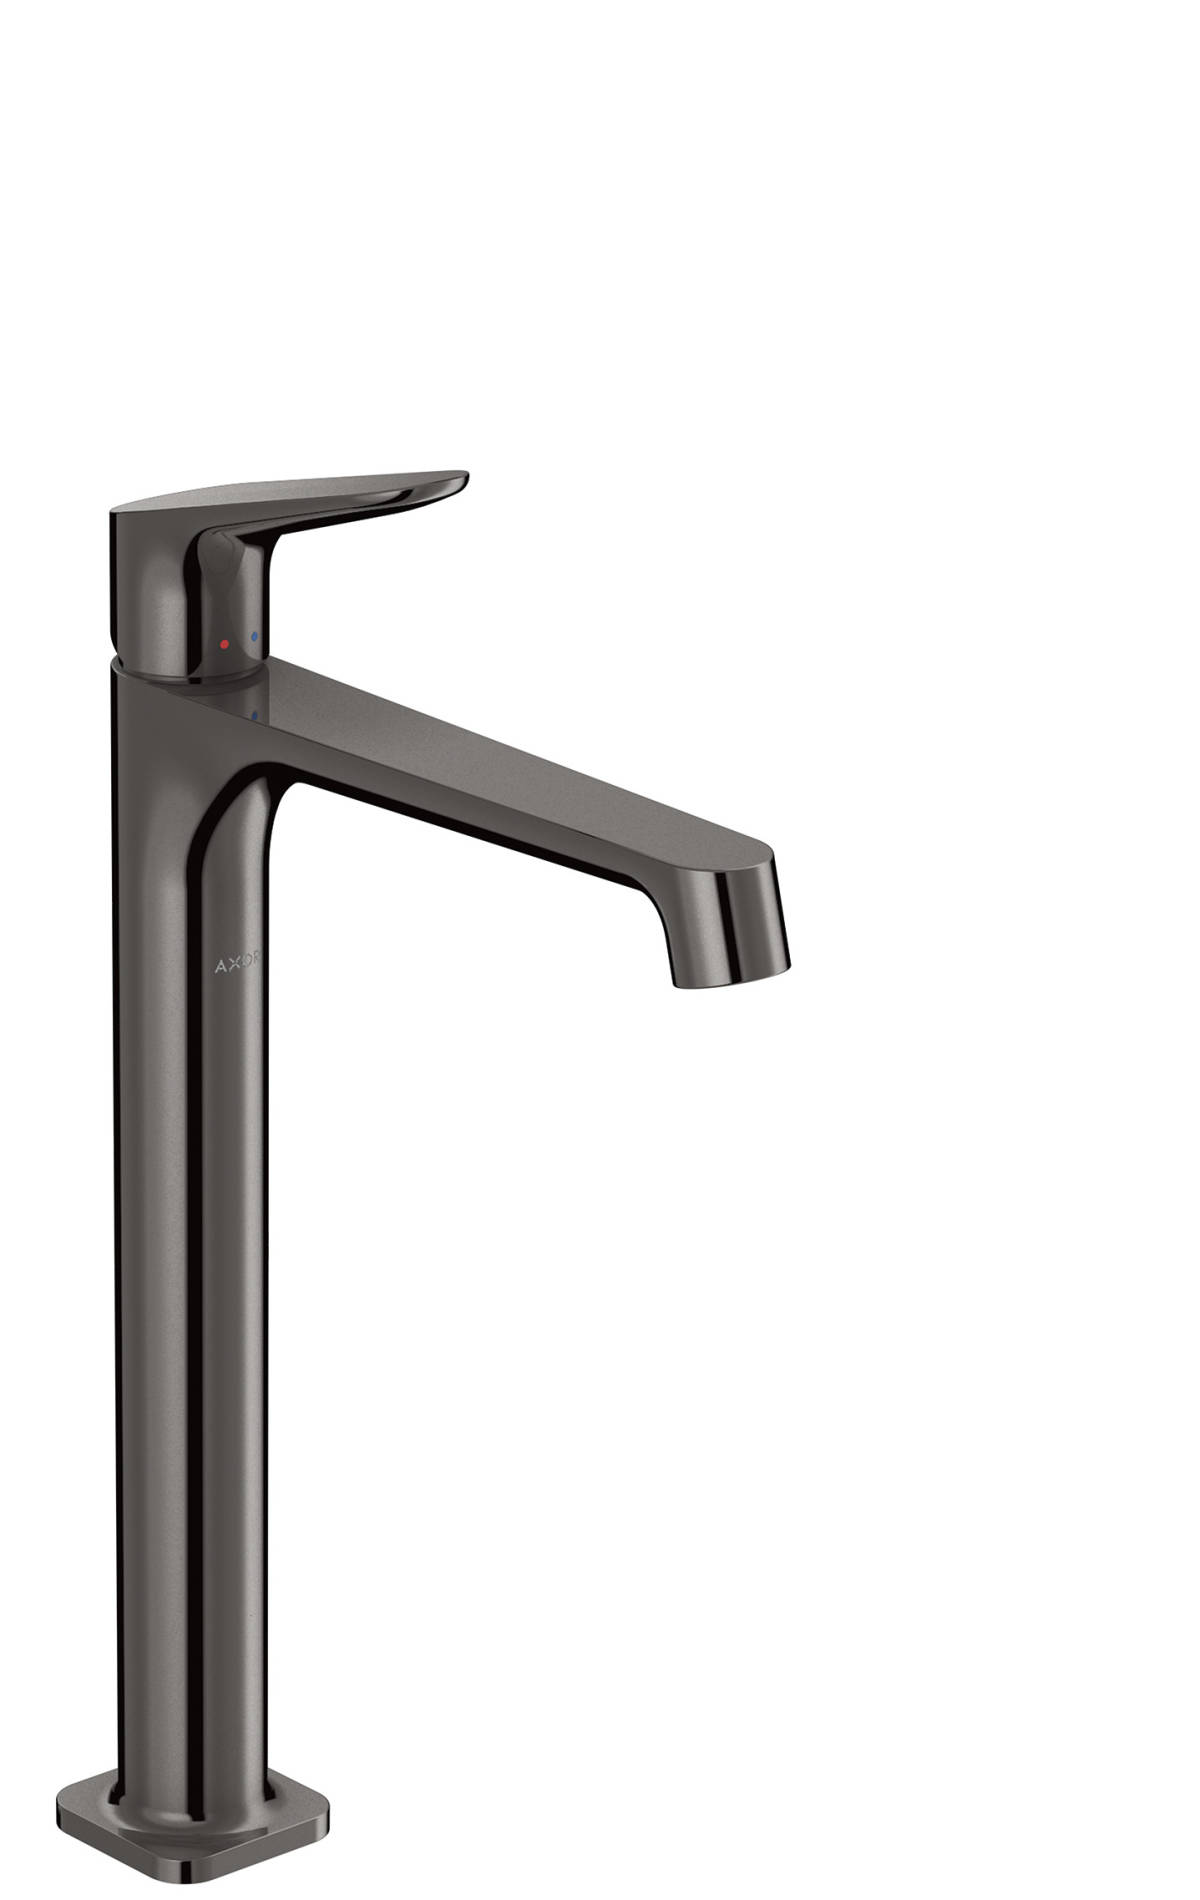 Single lever basin mixer 250 without pull-rod for wash bowls, Polished Black Chrome, 34127330